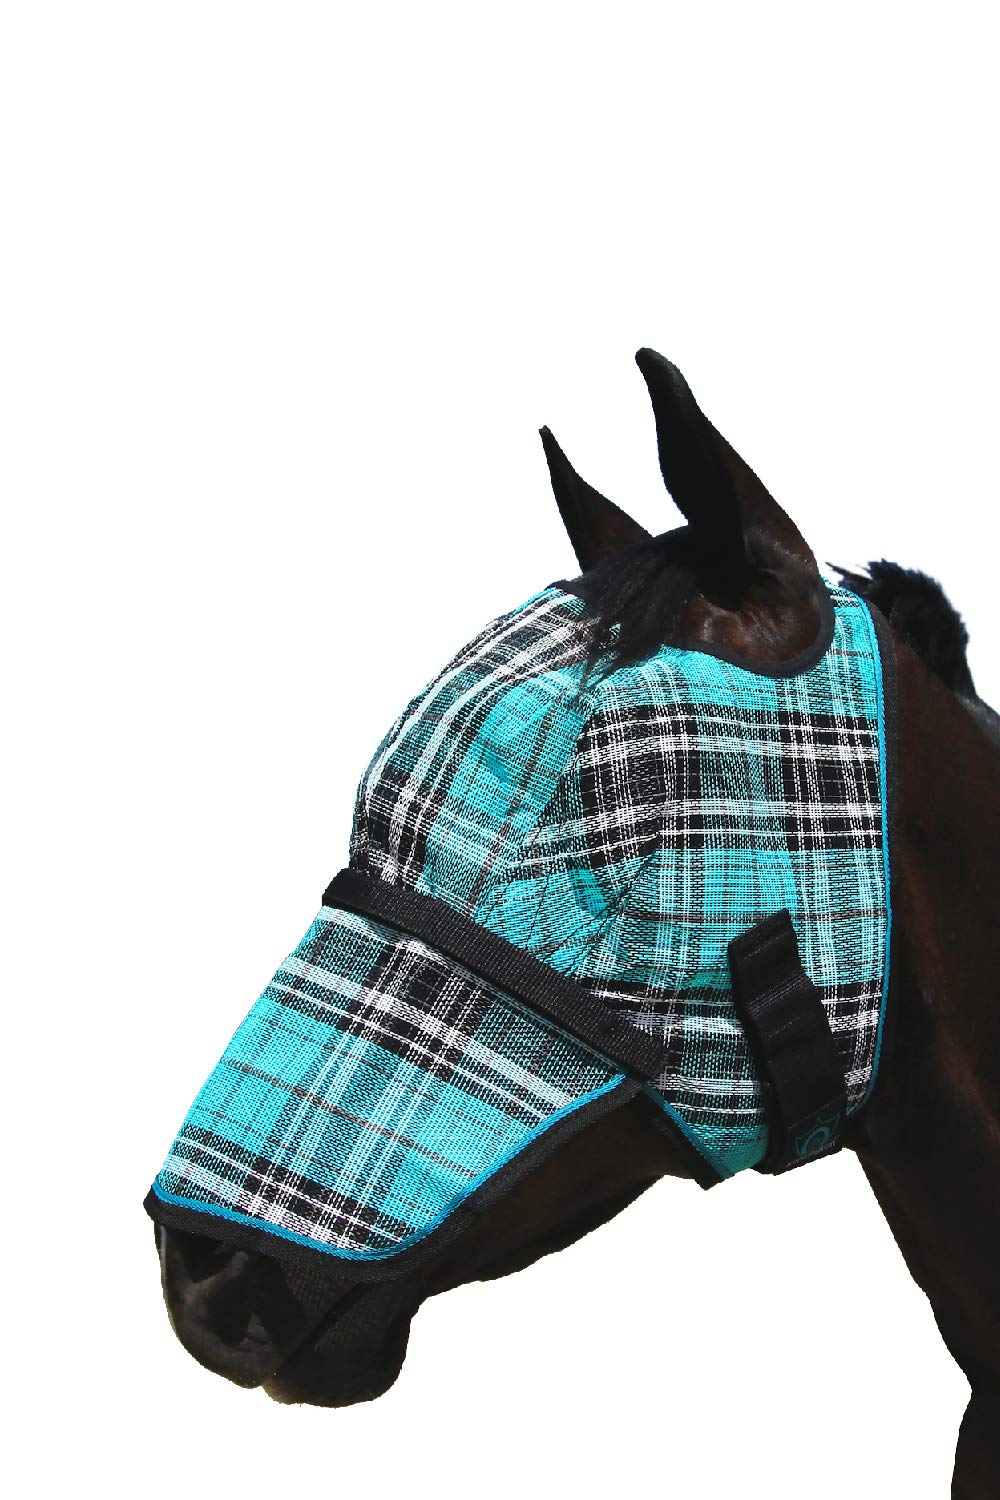 Kensington Signature Fly Mask with Removable Nose  - Protects Horses Face and Nose From Biting Insects and UV Rays While Allowing Full Visibility - Ears and Forelock Able to Come Through the Mask, Medium, Black Ice Plaid by Kensington Protective Products